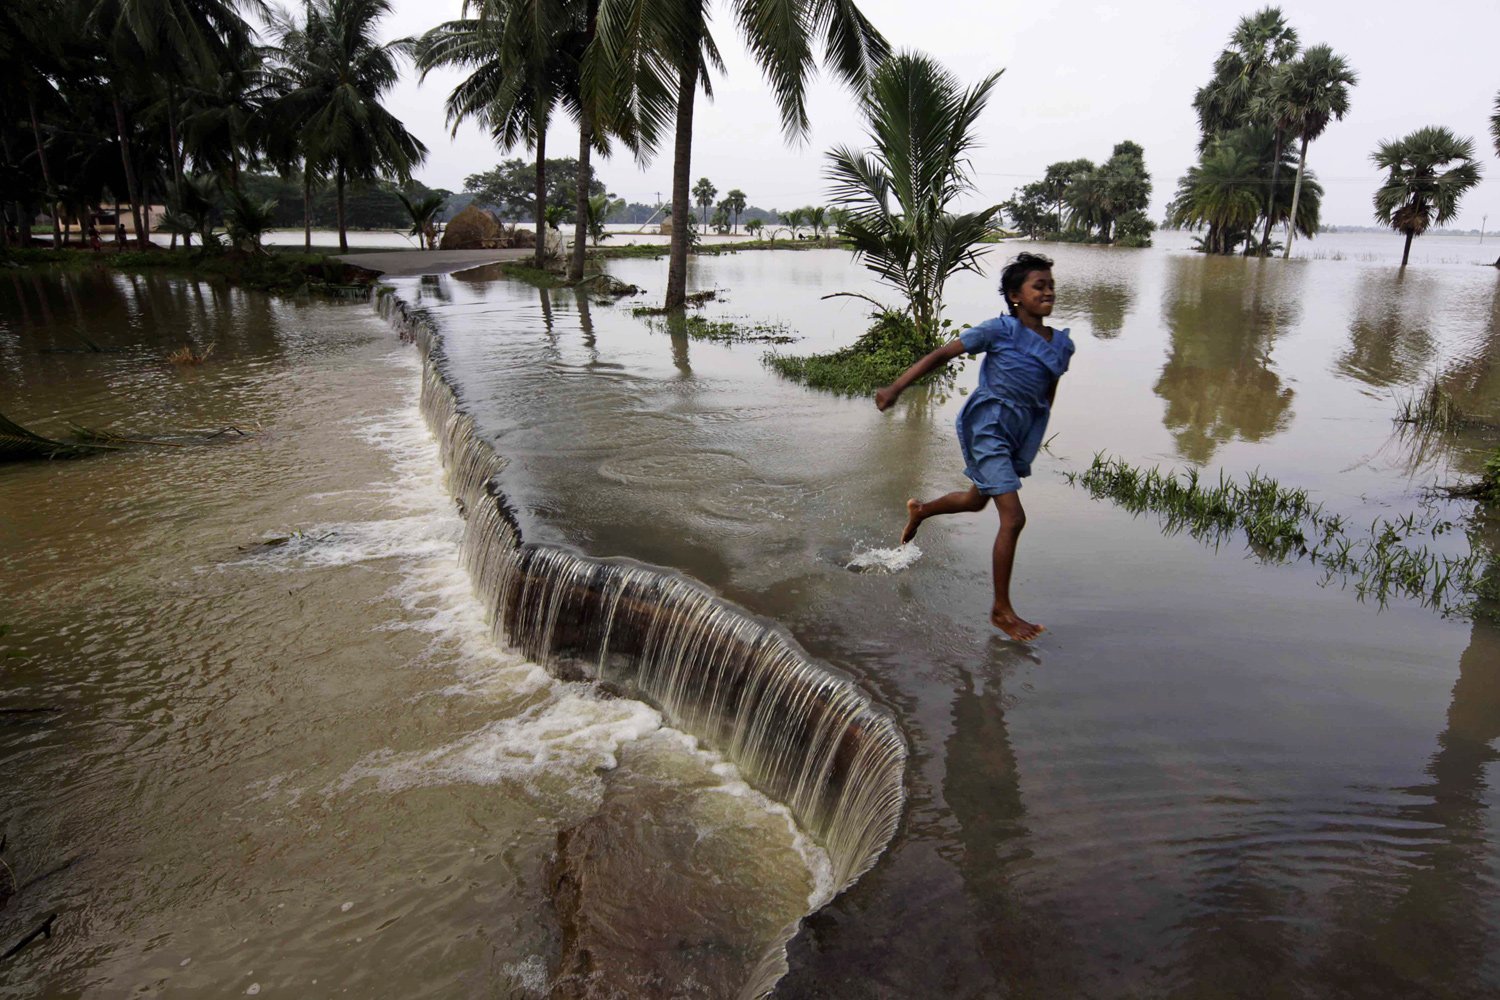 September 16, 2011. A girl runs across a flooded road as water recedes in Puri district, about 55 kilometers (34 miles) from the eastern Indian city of Bhubaneshwar.